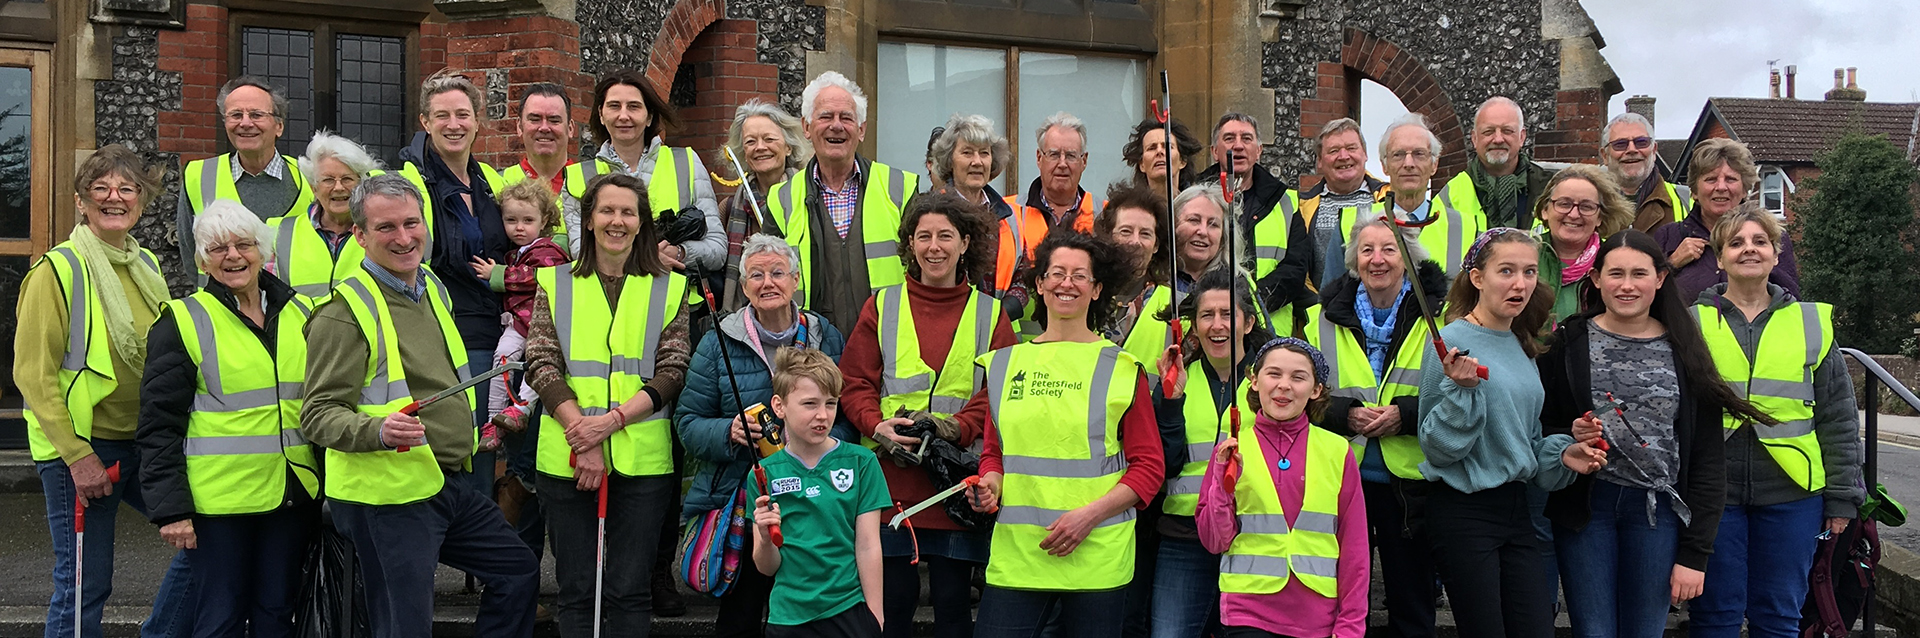 Litter-pickers ready to clean the streets in Petersfield